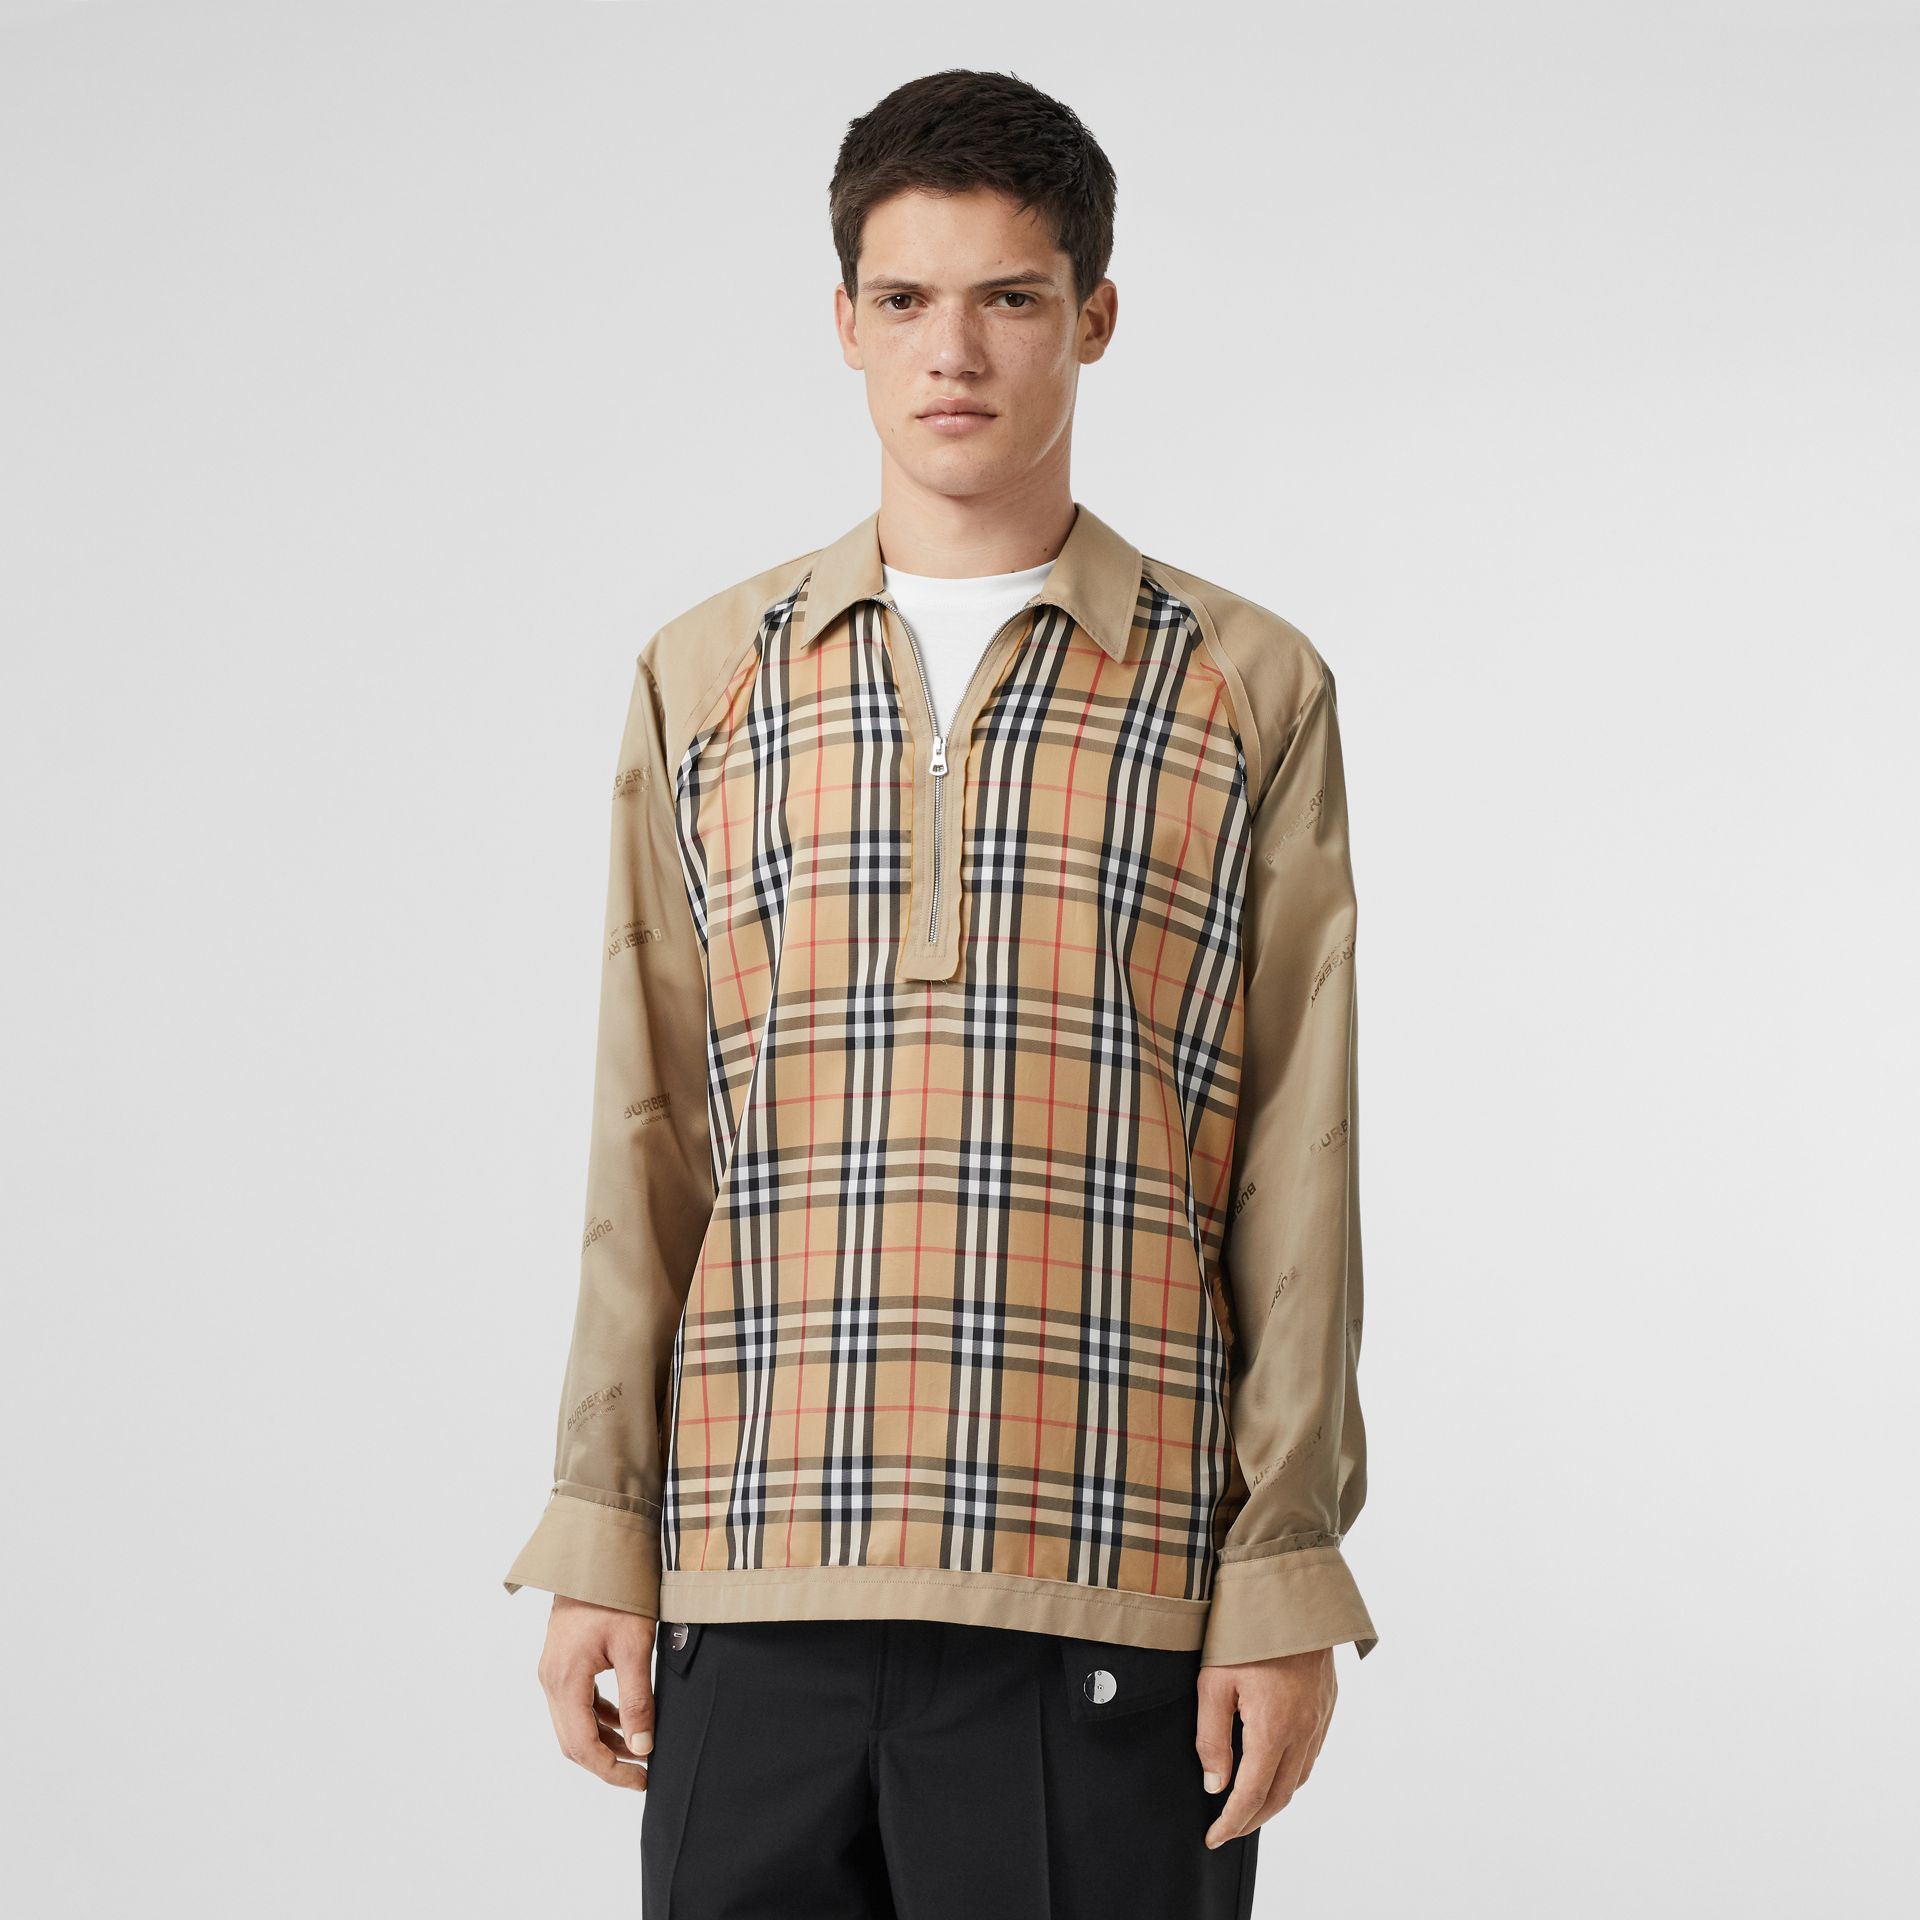 Seam Detail Vintage Check Shirt in Archive Beige - Men   Burberry United States - gallery image 4